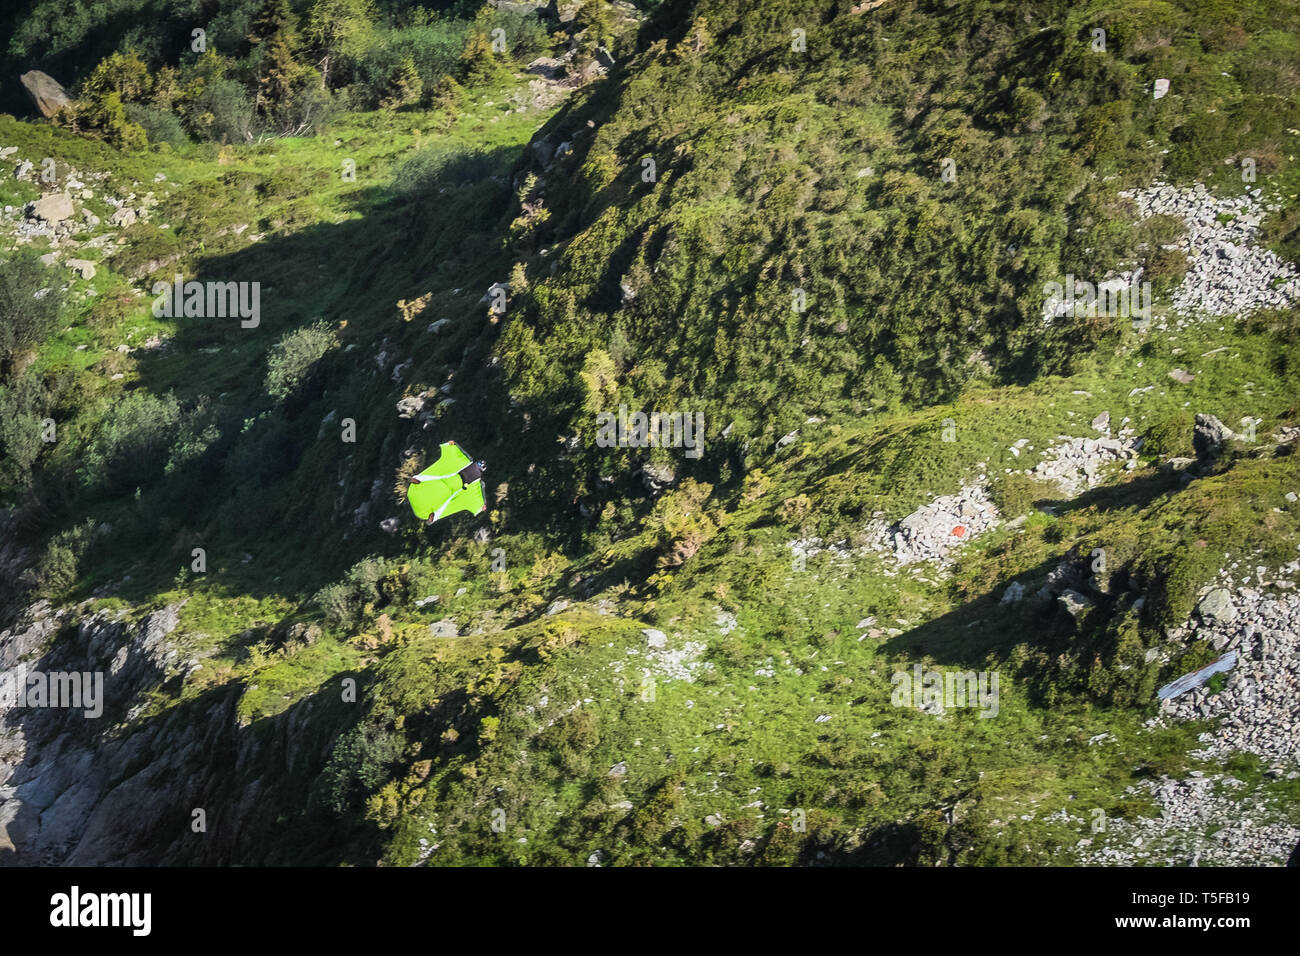 CHAMONIX, FRANCE - JULY 04: A wingsuit jumper jumping from a cliff in france, Auvergne-rhône-alpes, Chamonix, France on July 4, 2015 in Chamonix, France. (Photo by Fred Marie/Art in All of Us/Corbis via Getty Images) - Stock Image